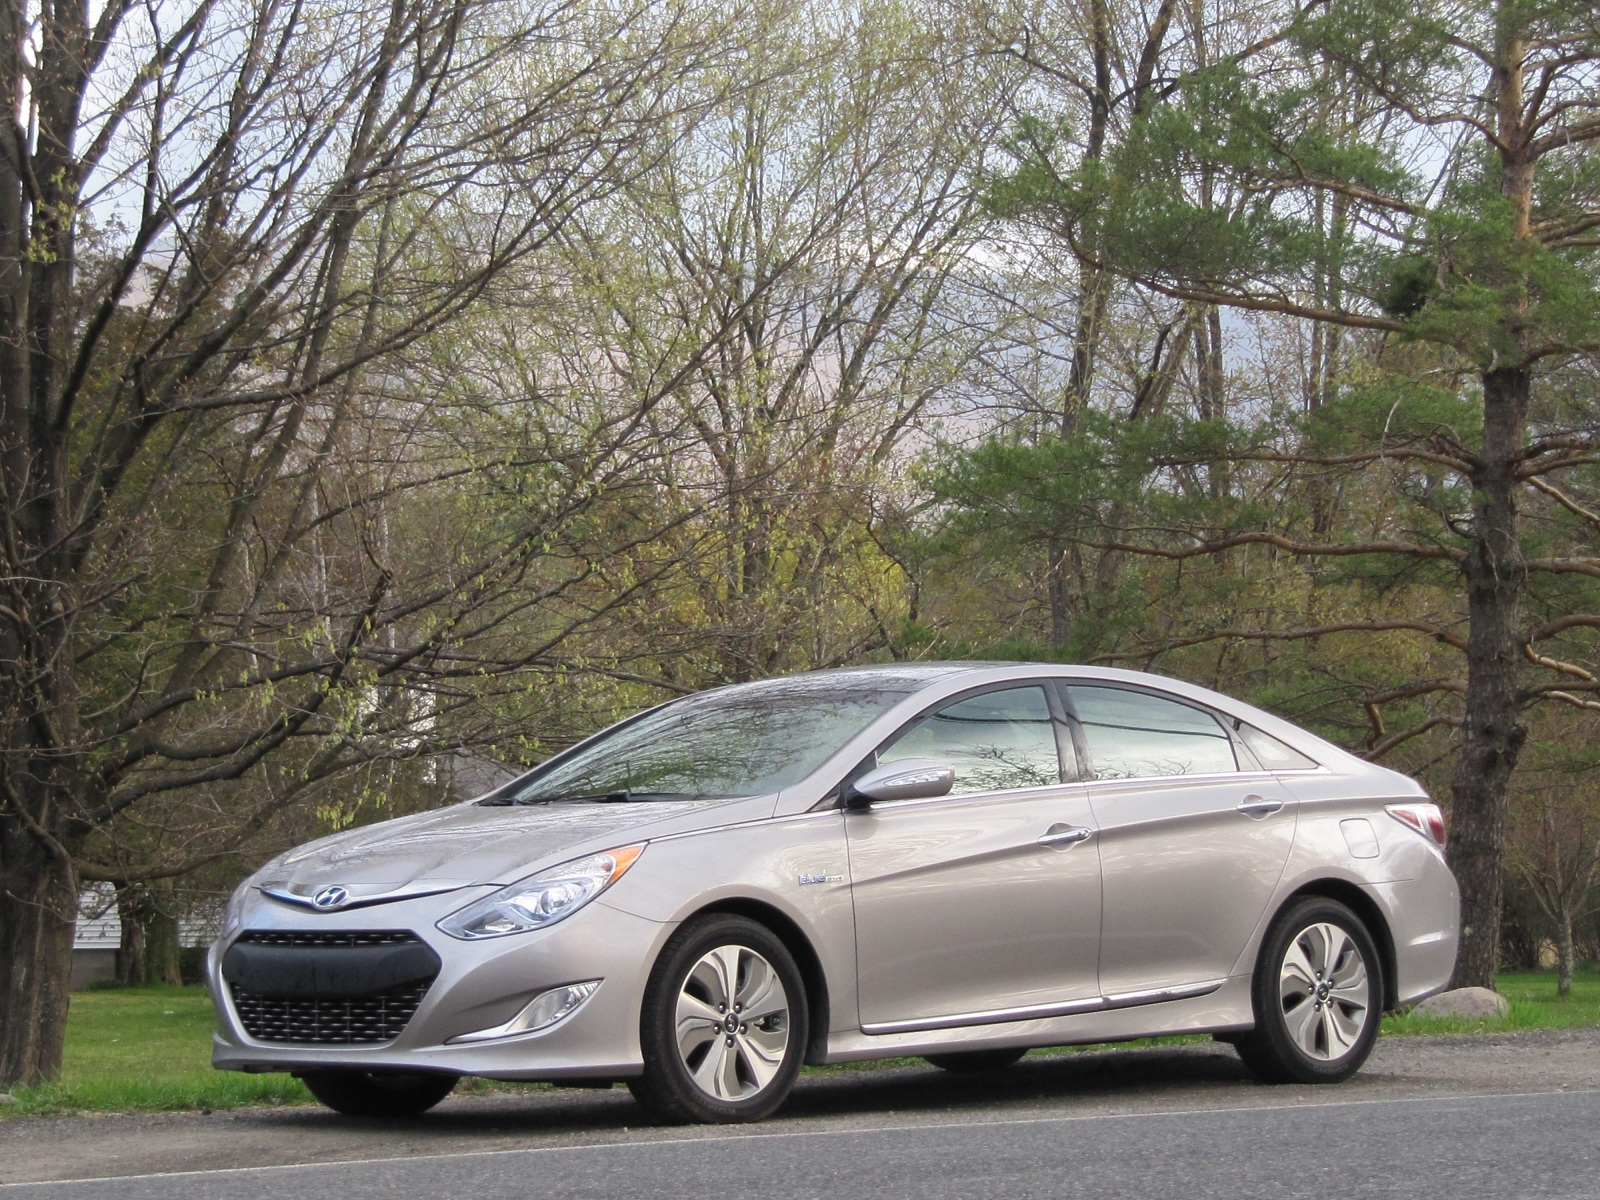 hybrid informations sonata photo base makes limited hyundai articles sedan photos